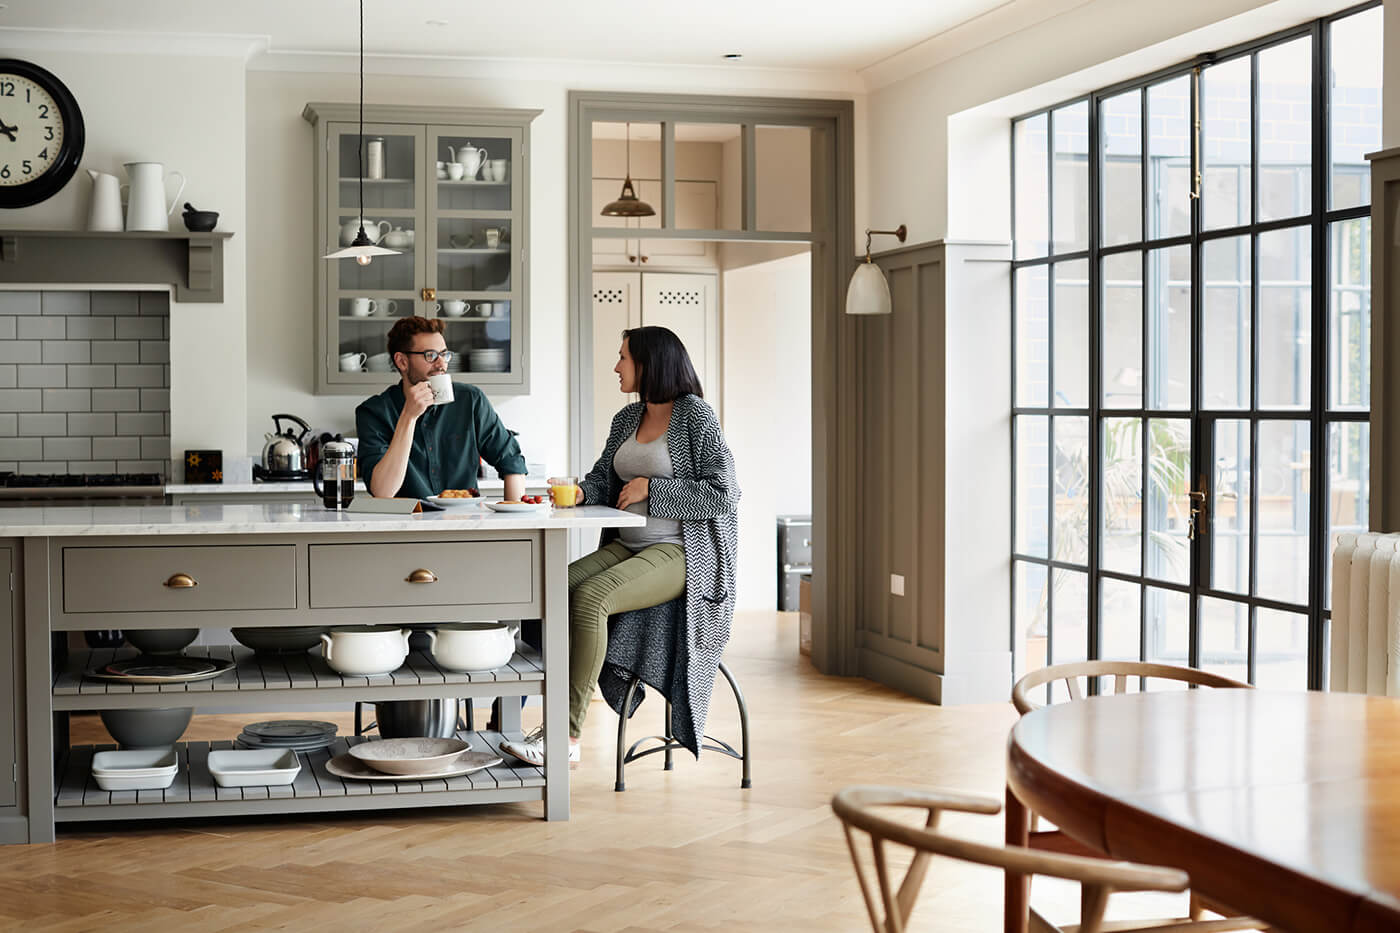 a man and woman eating breakfast in the kitchen